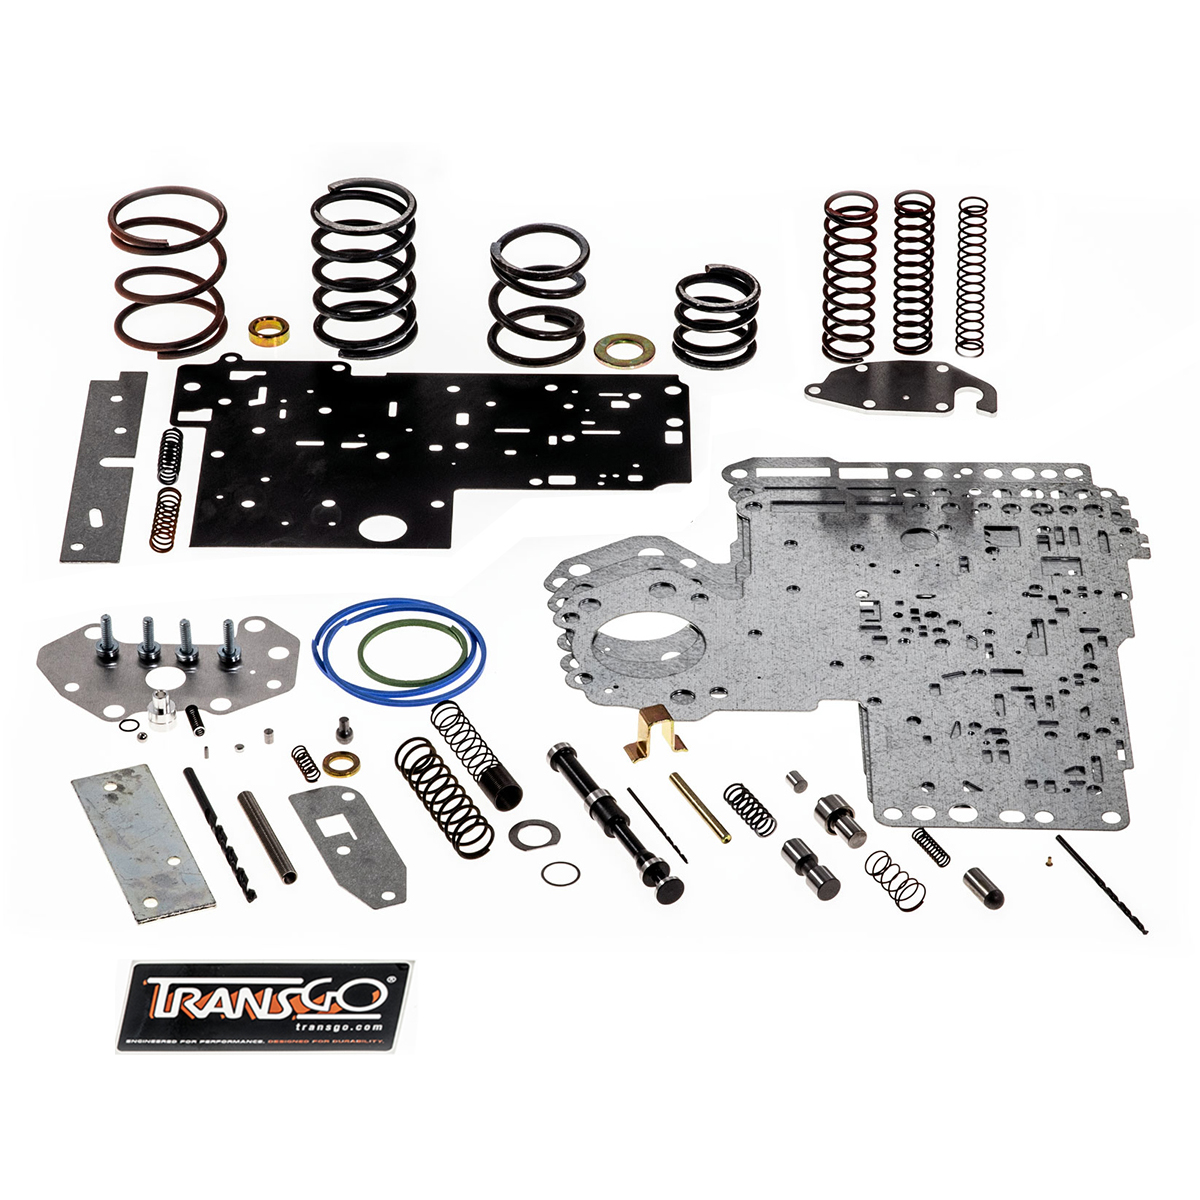 1) Transgo TFRE-PRO 46, 47, 48RE Transgo Pro Shift Kit